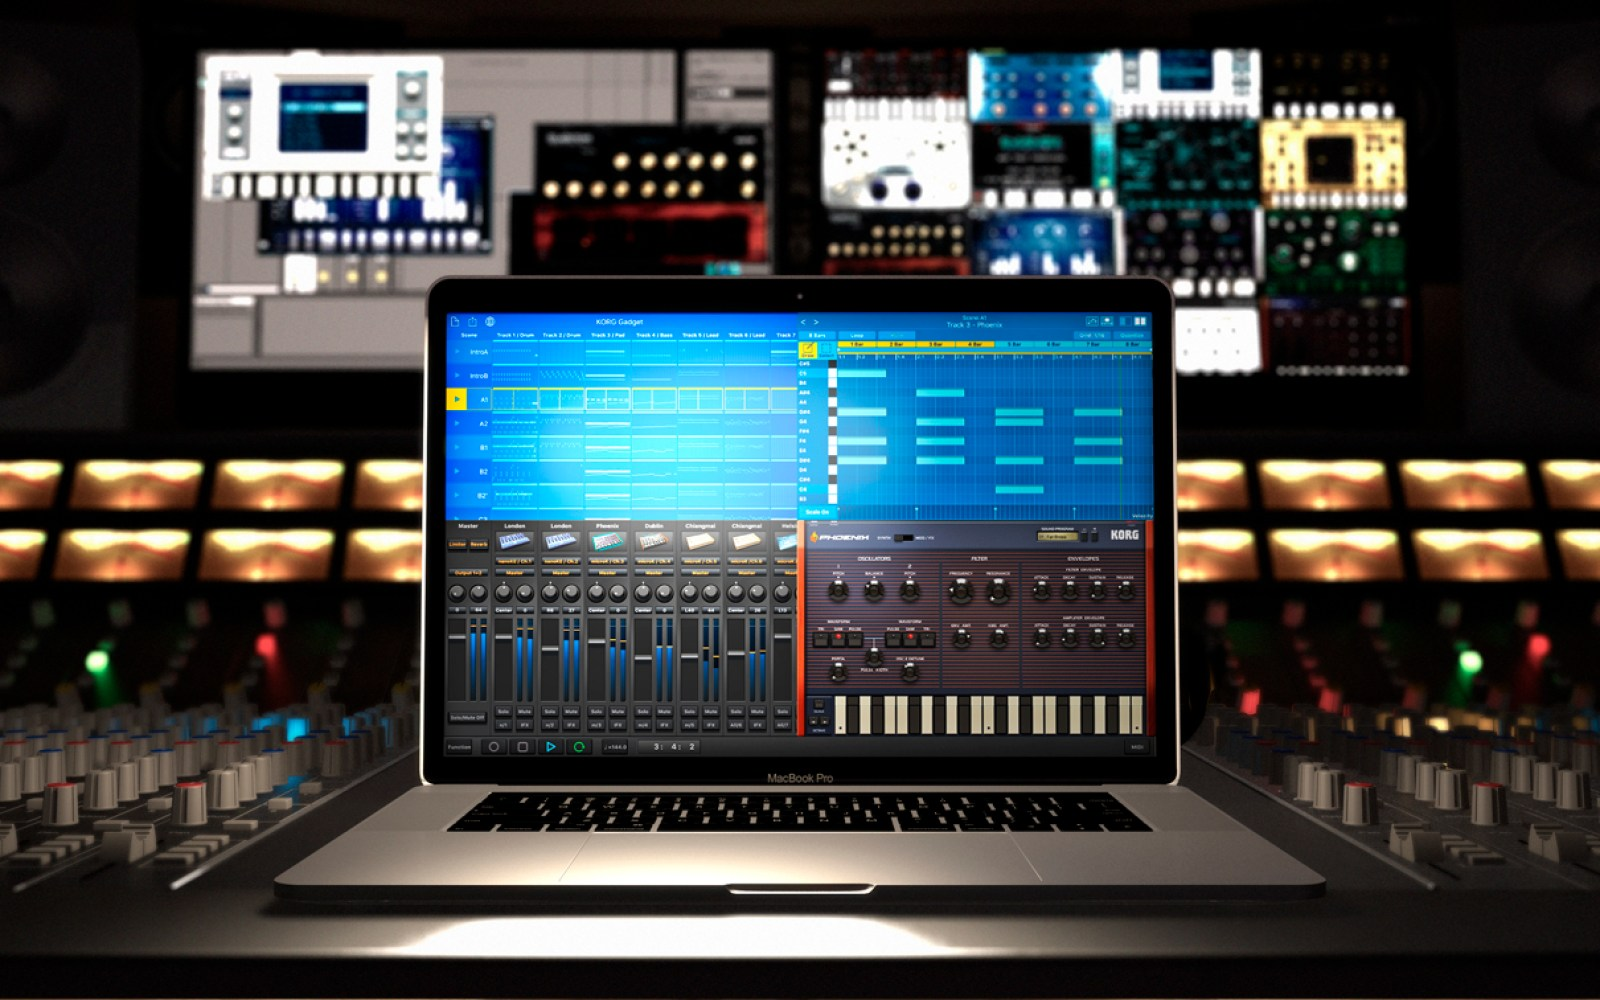 Korg's powerful iOS Gadget music production app is coming to the Mac w/ full DAW support